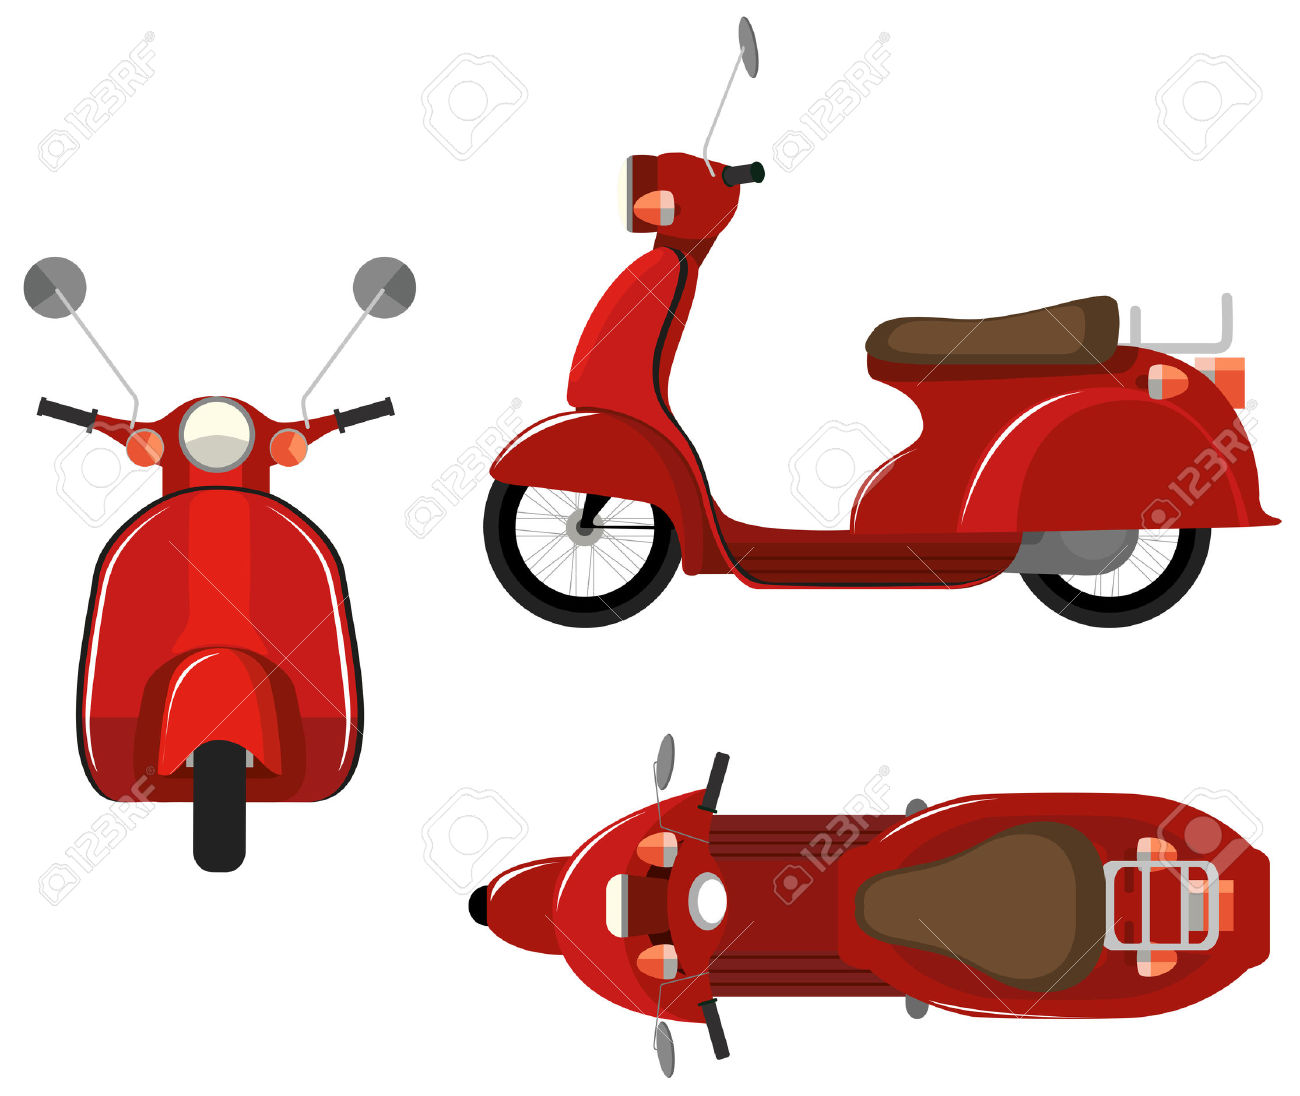 Illustration Of A Close Up Scooter With Different View Point.